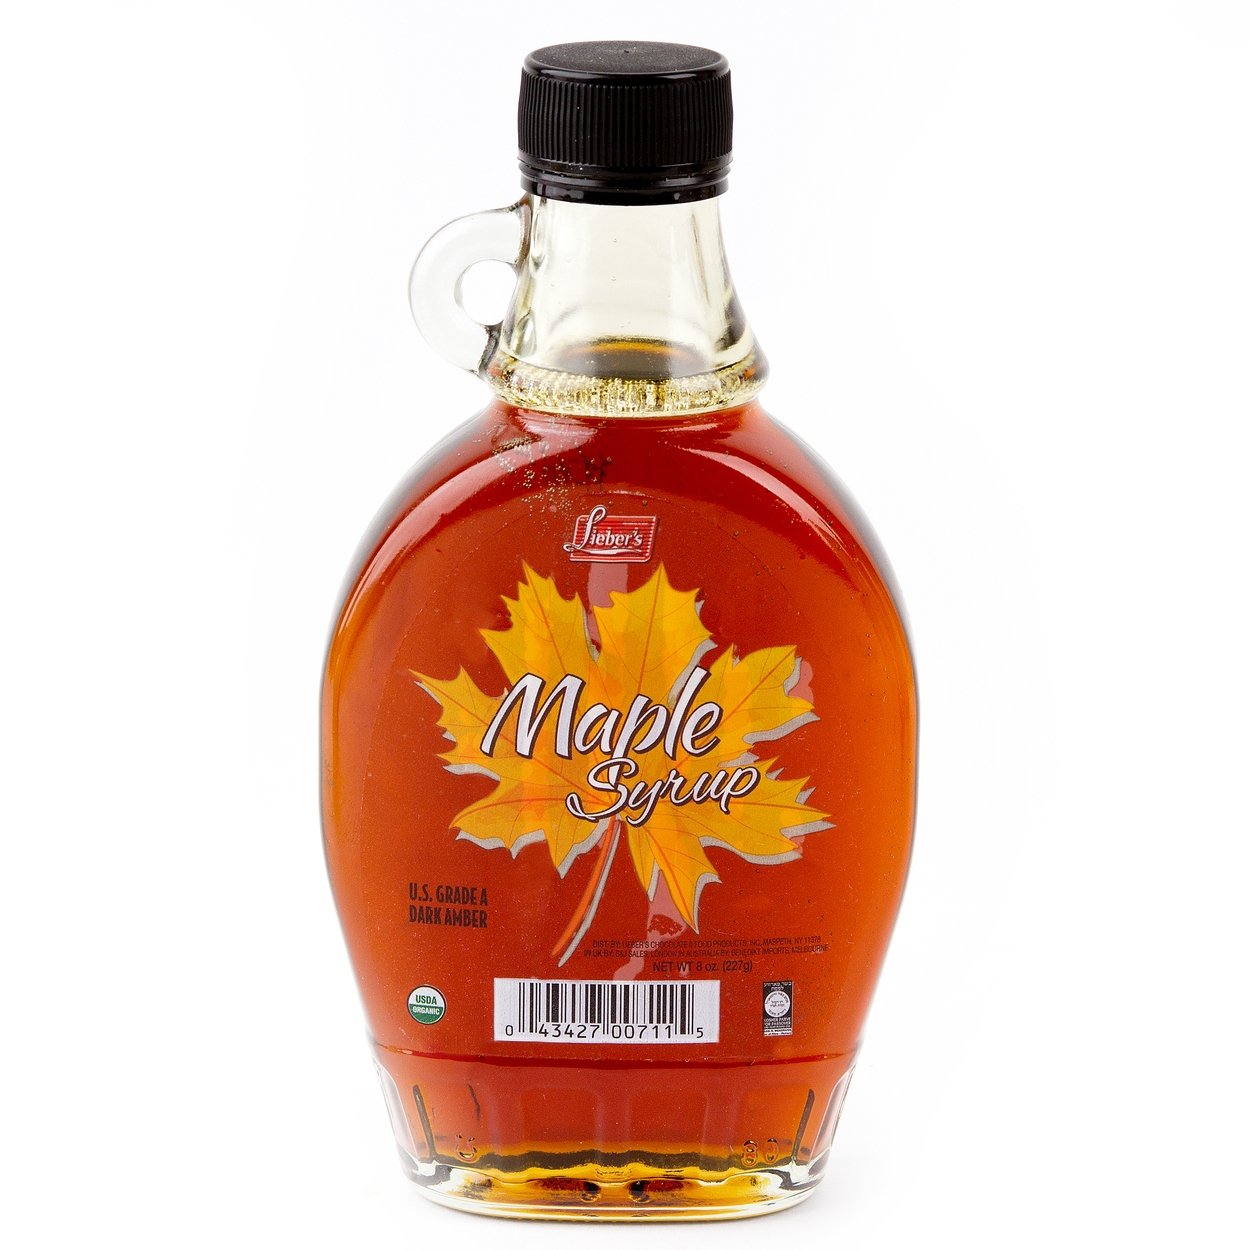 7e45f4ba2d9 Passover Maple Syrup - 8 OZ Jar • Passover Food Specialties